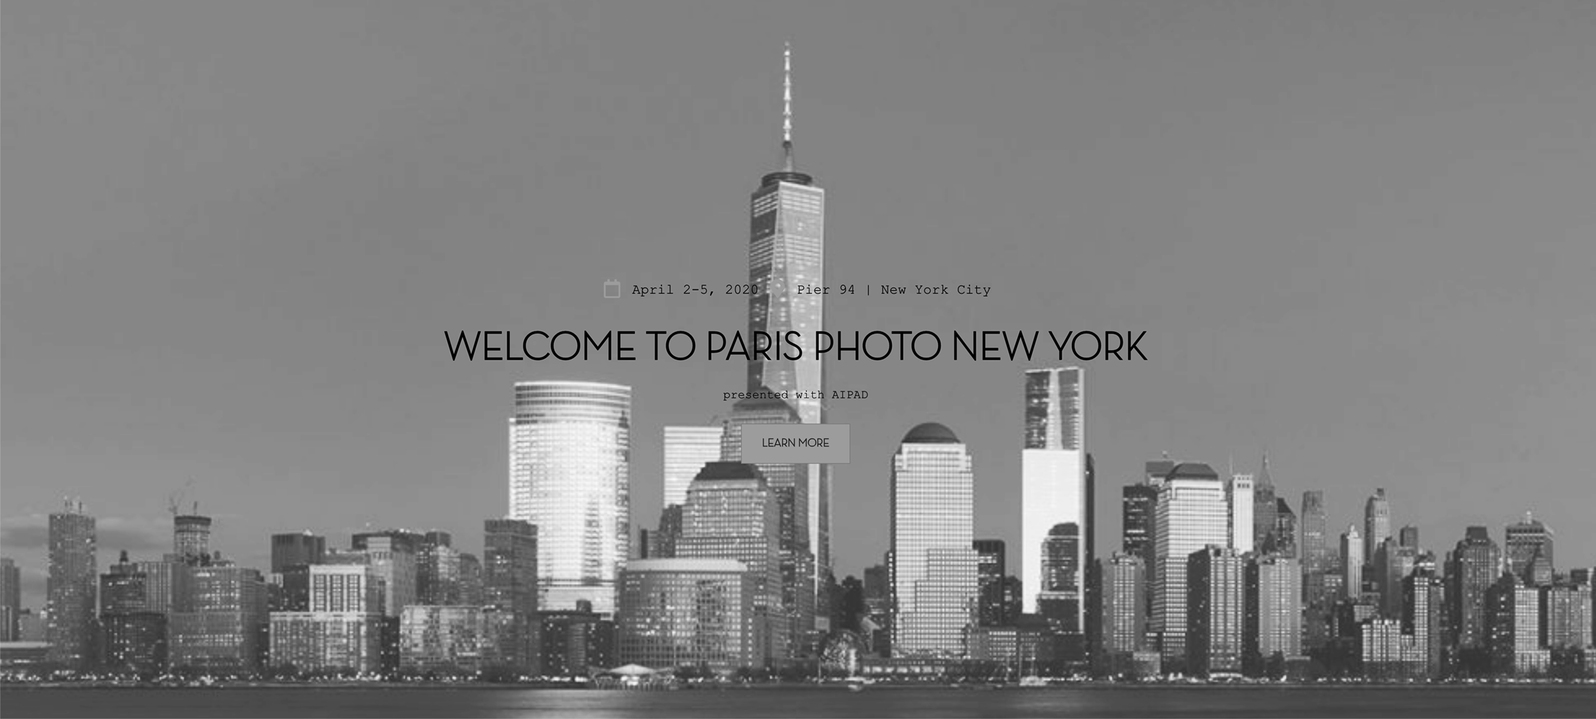 Jeanne Szilit 2021  PARIS PHOTO NEW YORK (AIPAD)